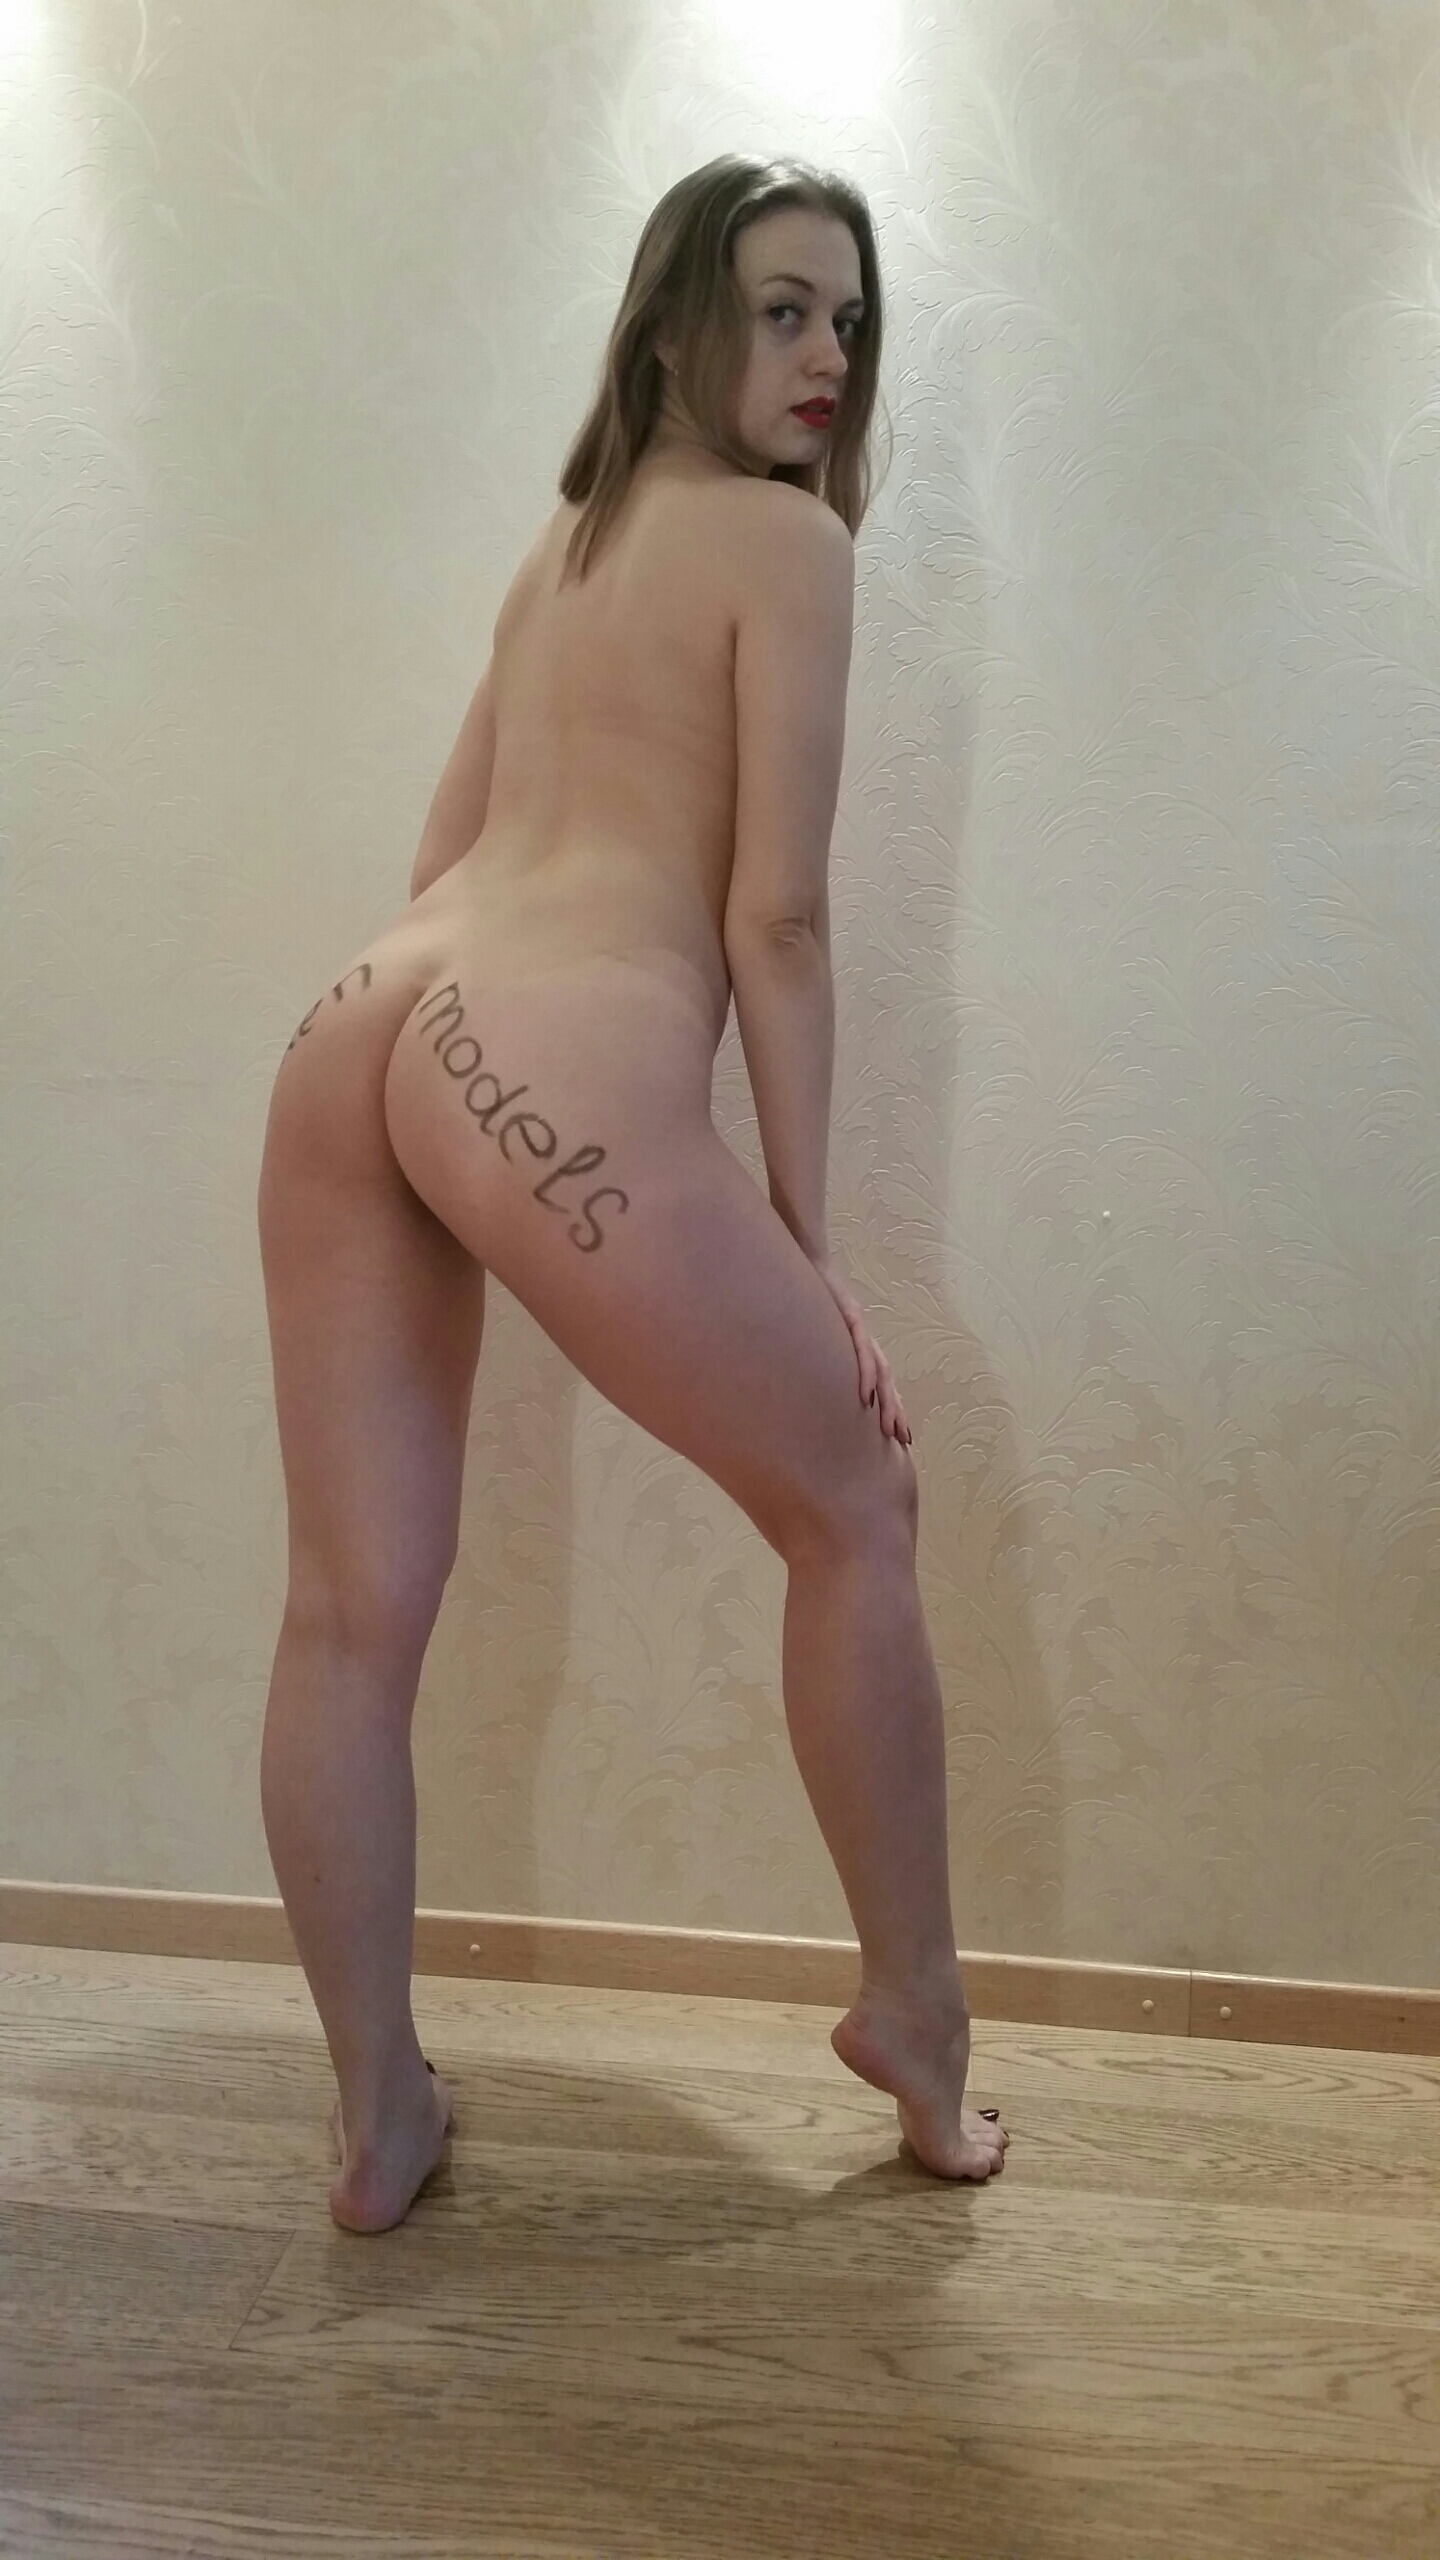 sarah bad girls club nude